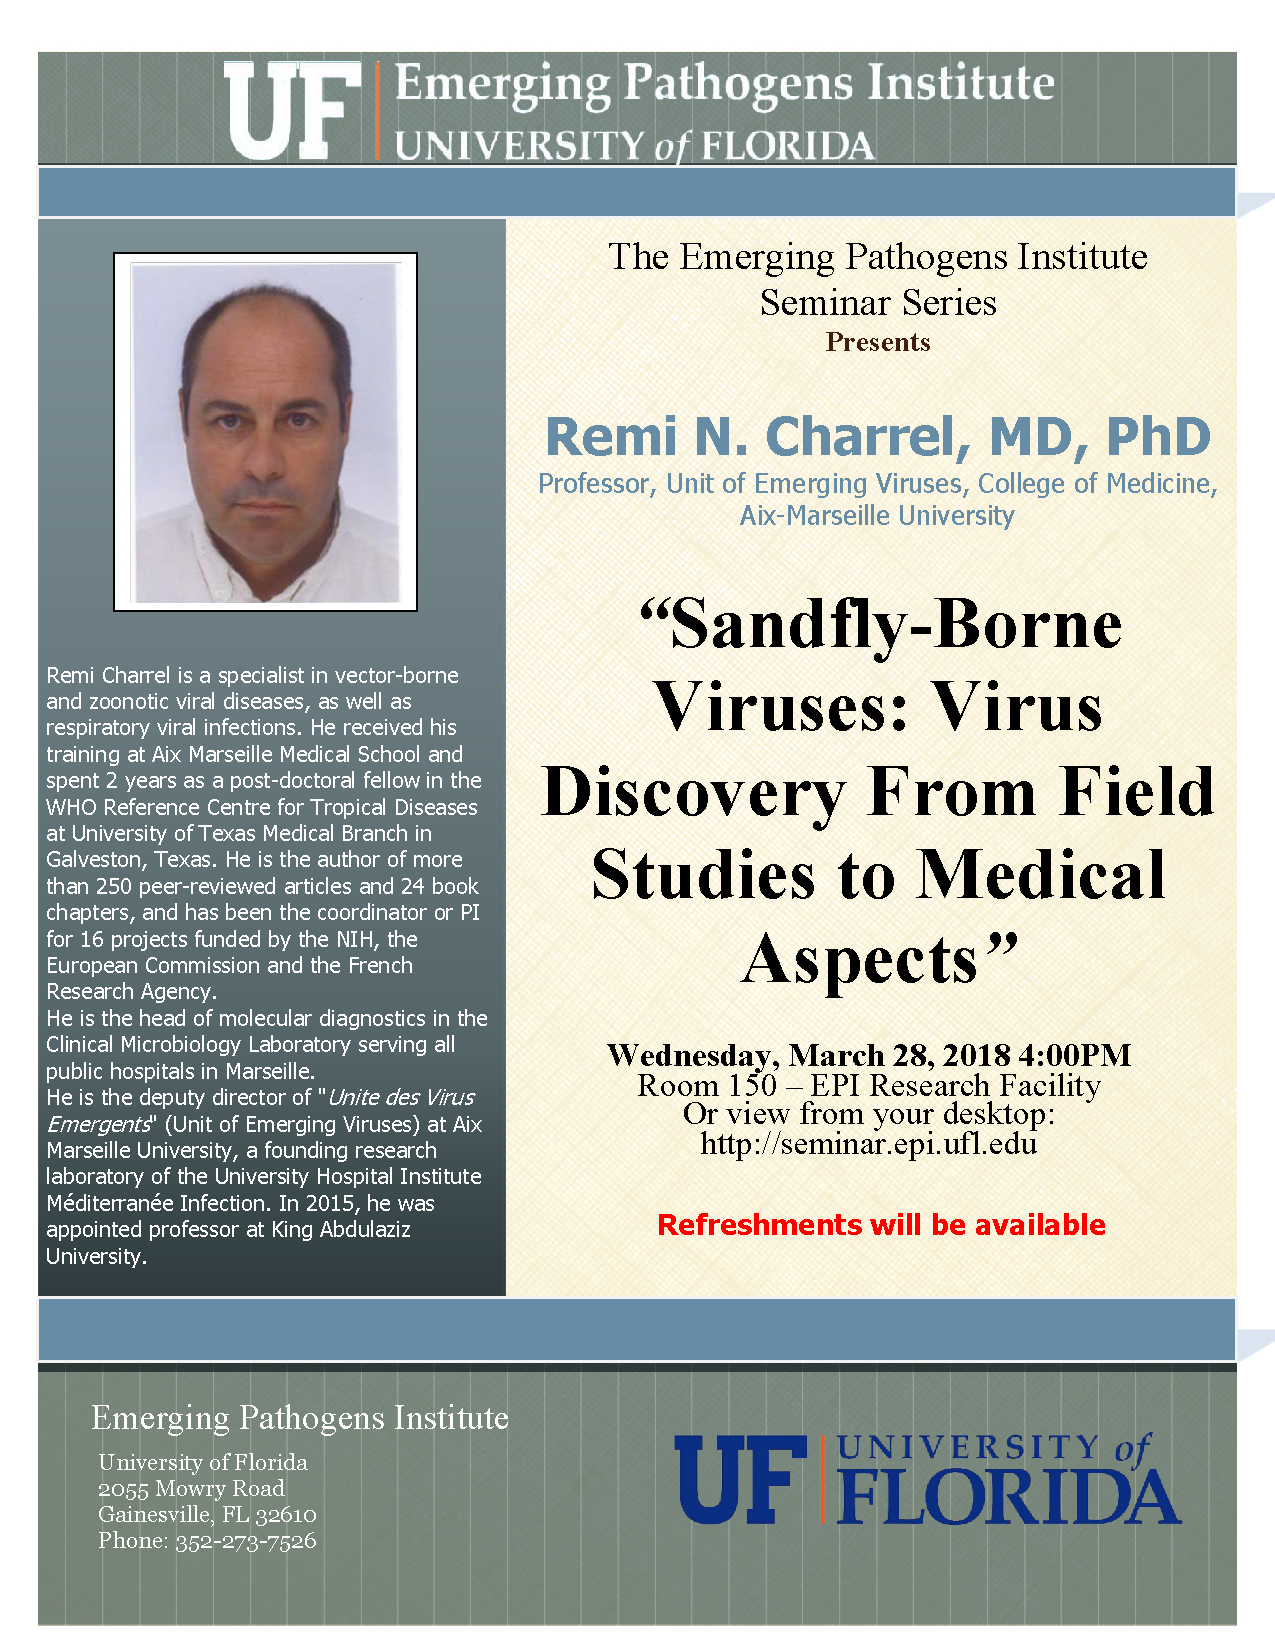 Sandfly-Borne Viruses: Virus Discovery From Field Studies to Medical Aspects